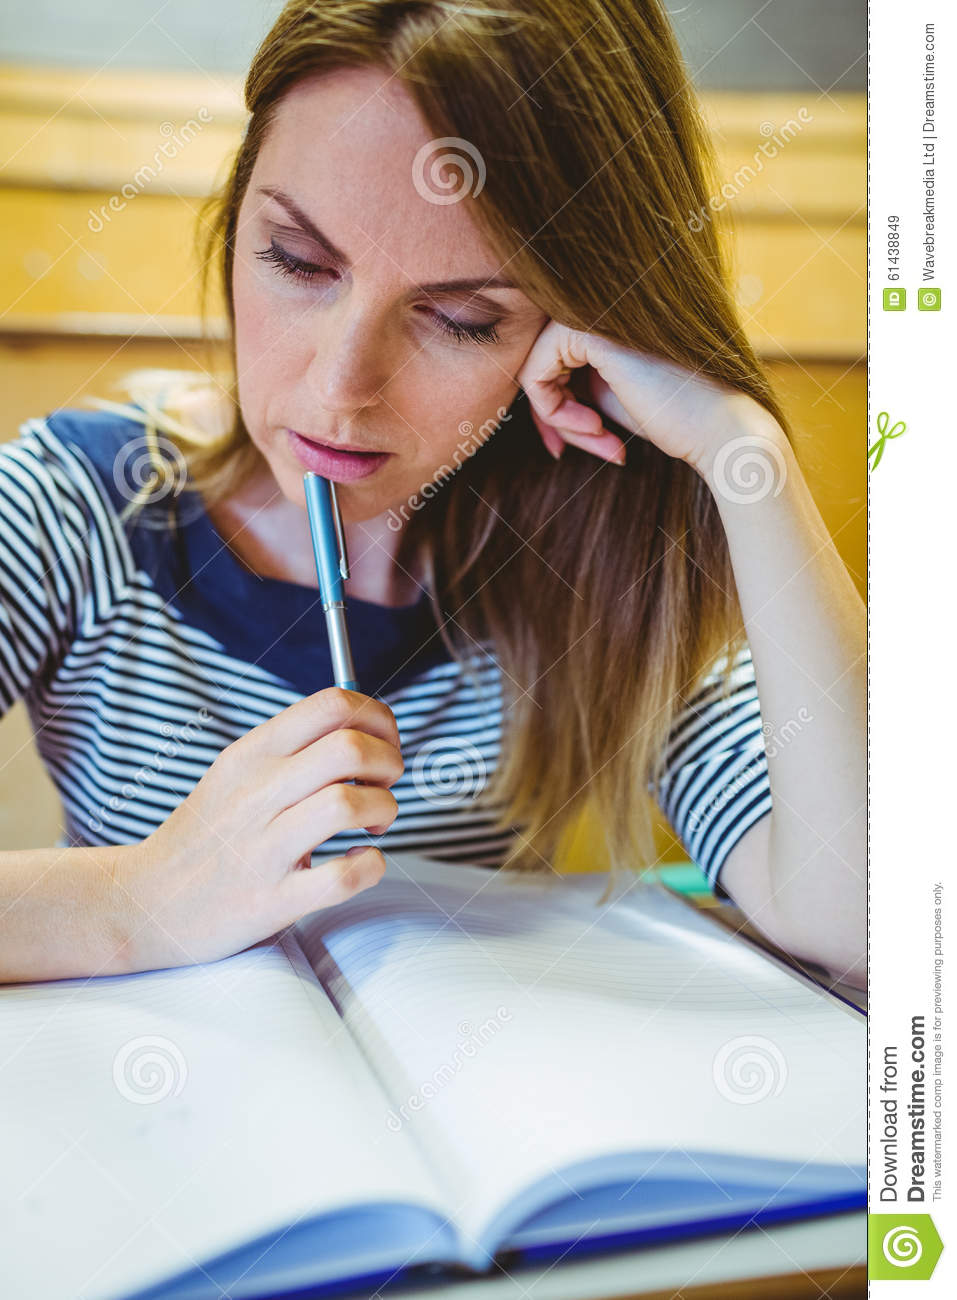 student lecturer notes Get good at writing up your lecture notes and you're far more likely to do   students tend to write out verbatim what is being said by the lecturer.